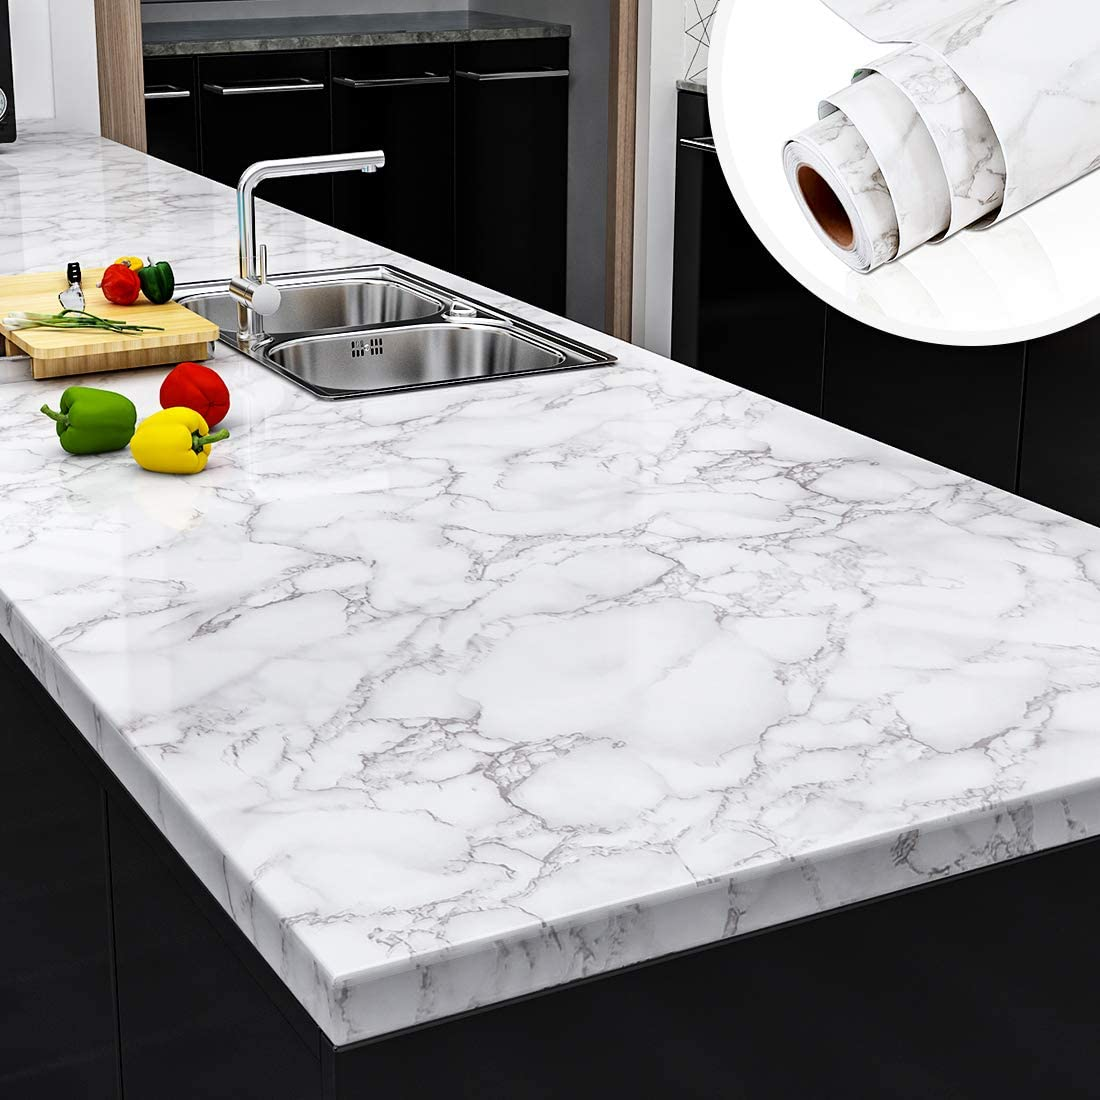 "Yenhome Faux Marble Peel and Stick Countertops 24"" x 118"" White Gray Marble Counter Top Covers Peel and Stick Wallpaper for Kitchen Backsplash Peel and Stick Self Adhesive Removable Wallpaper"